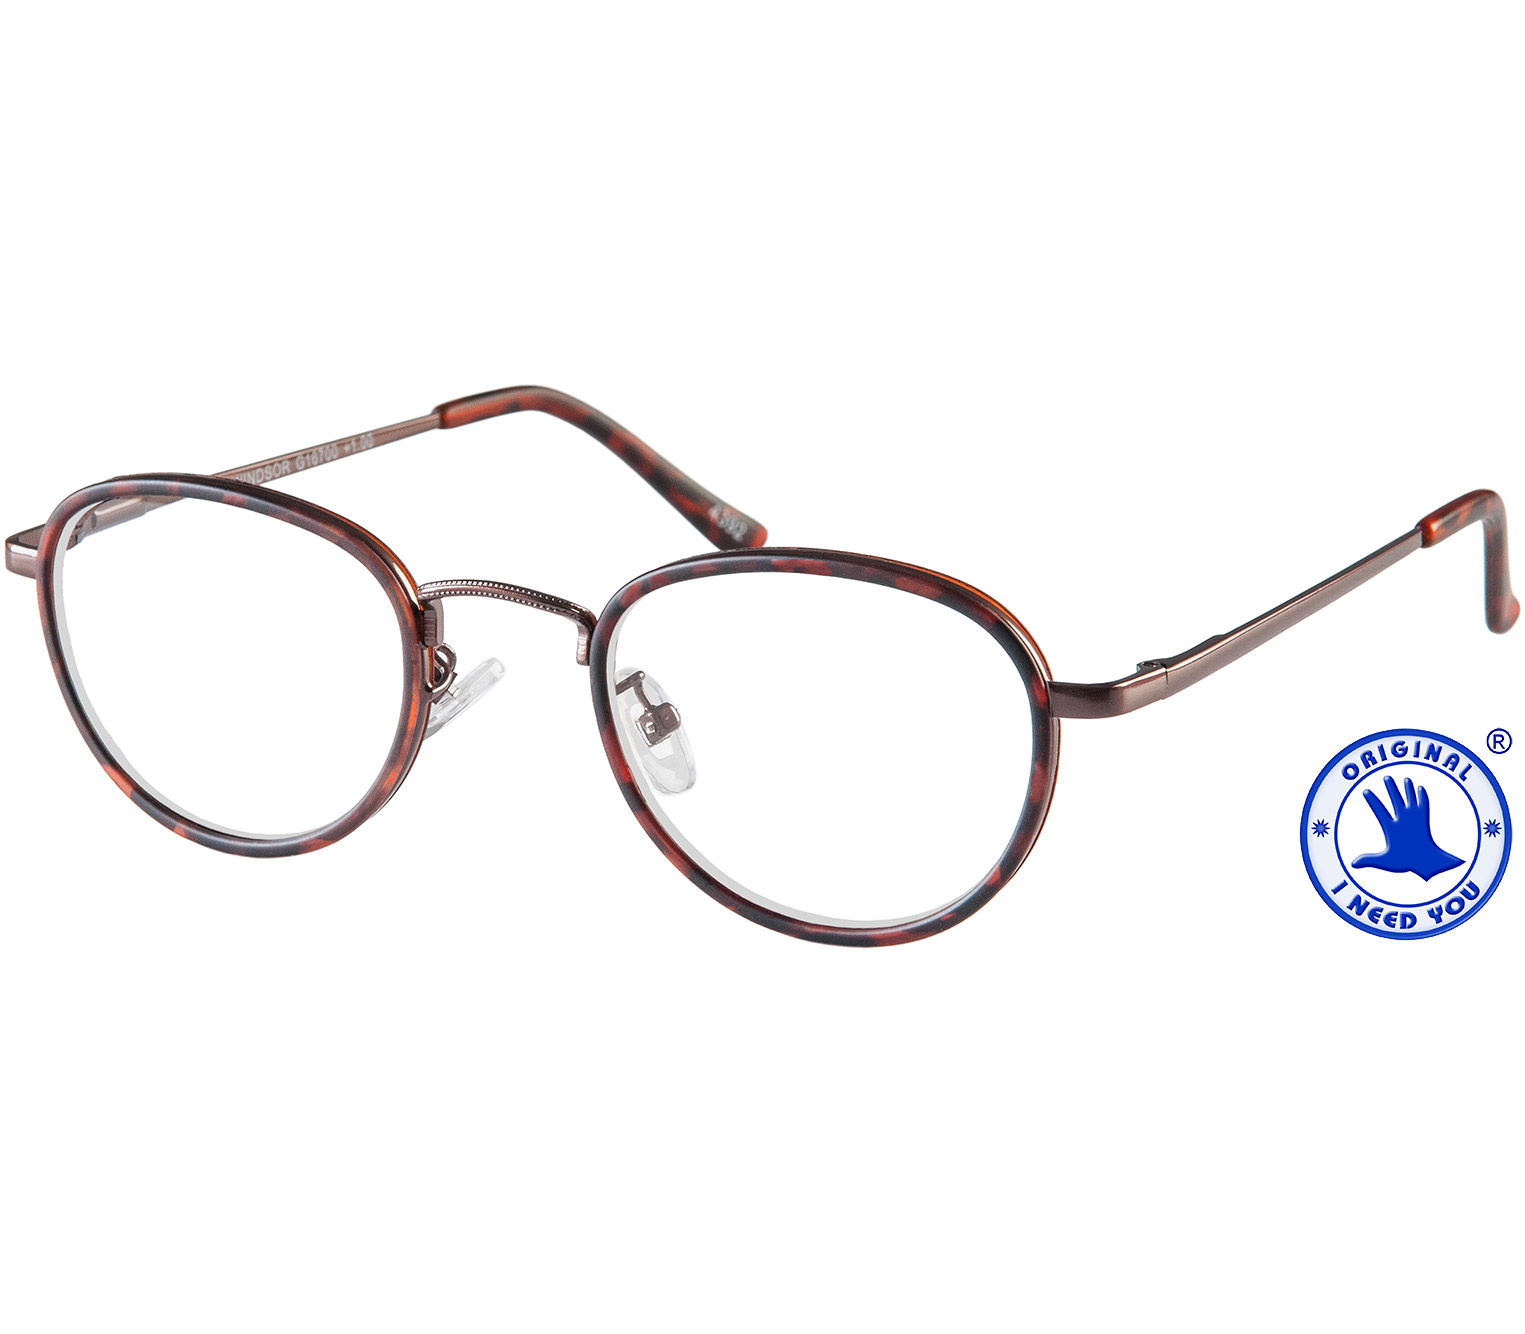 Main Image (Angle) - Windsor (Tortoiseshell) Retro Reading Glasses